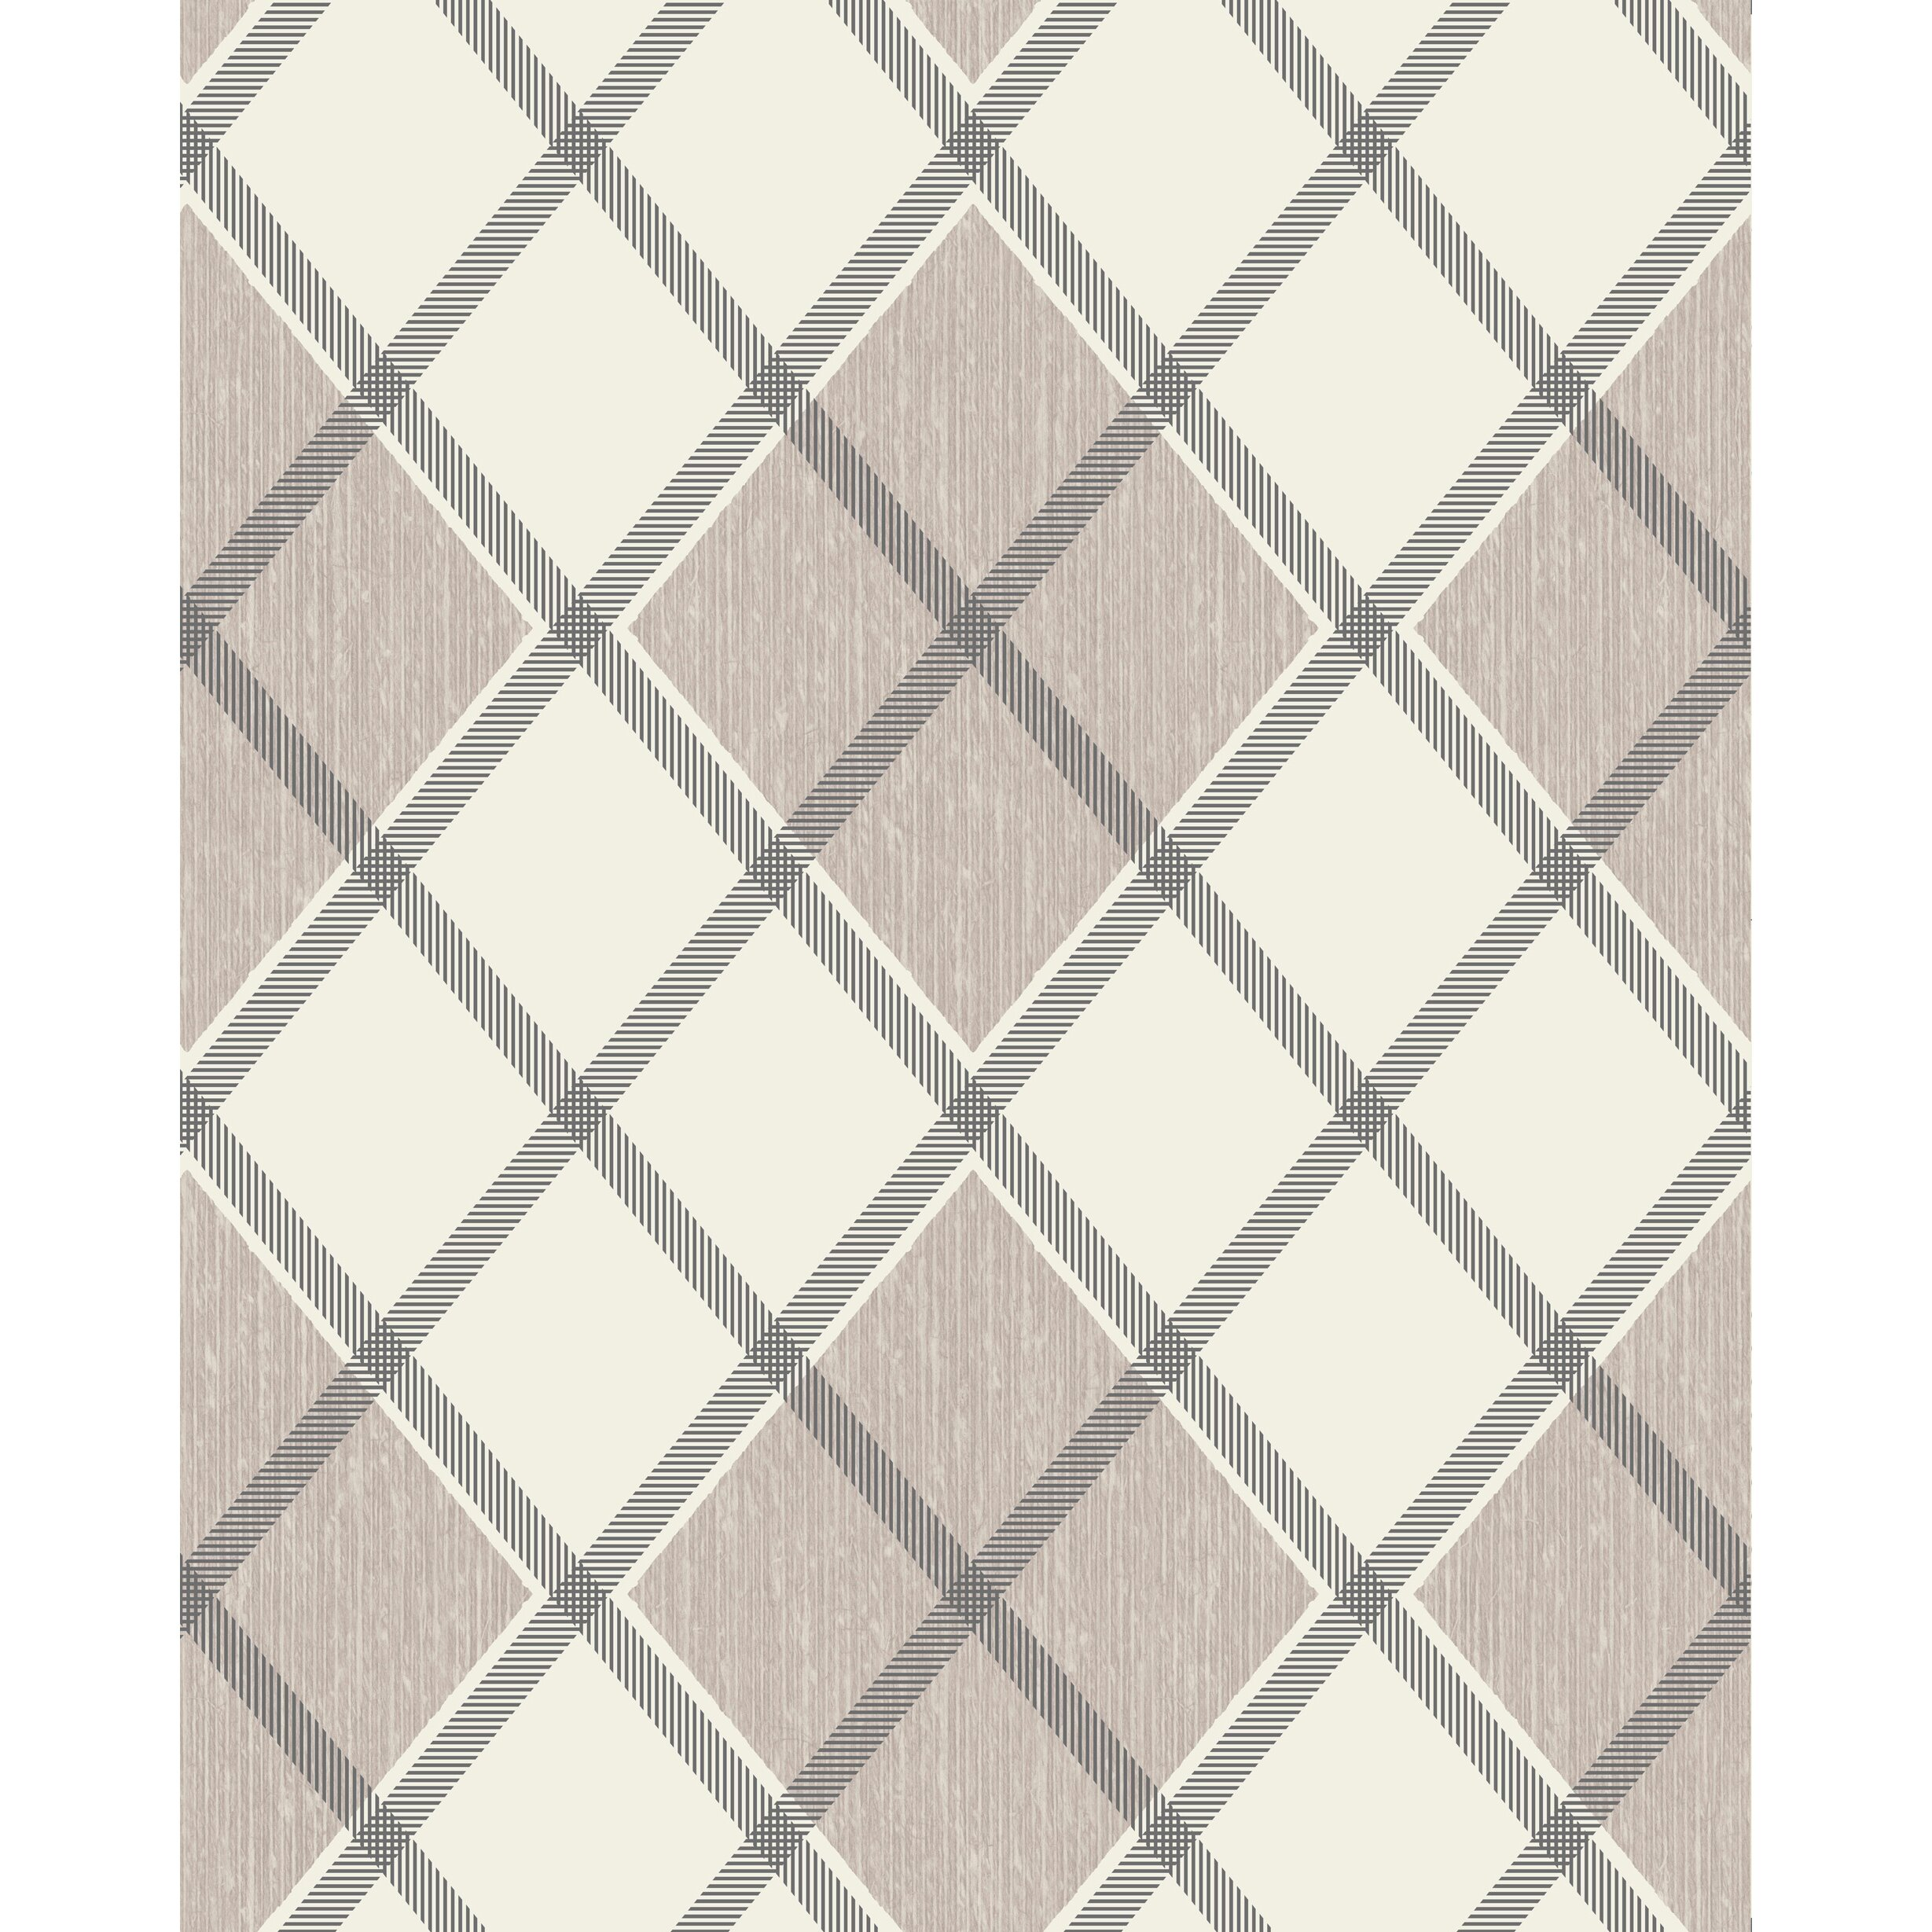 Graham brown argyle 33 39 x 20 geometric wallpaper for Graham and brown bathroom wallpaper